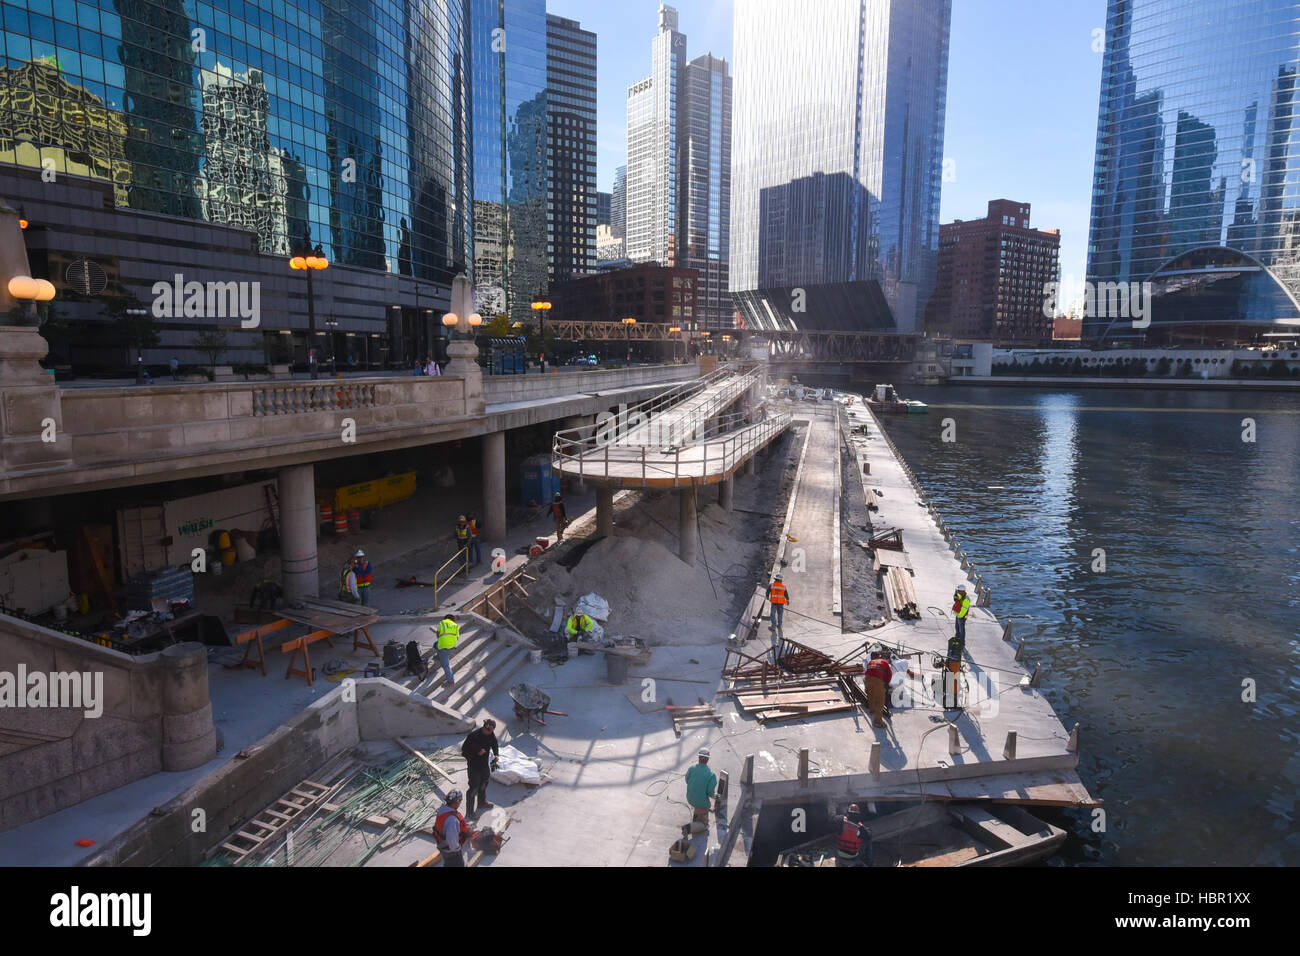 Construction workers in Chicago, Illinois. - Stock Image